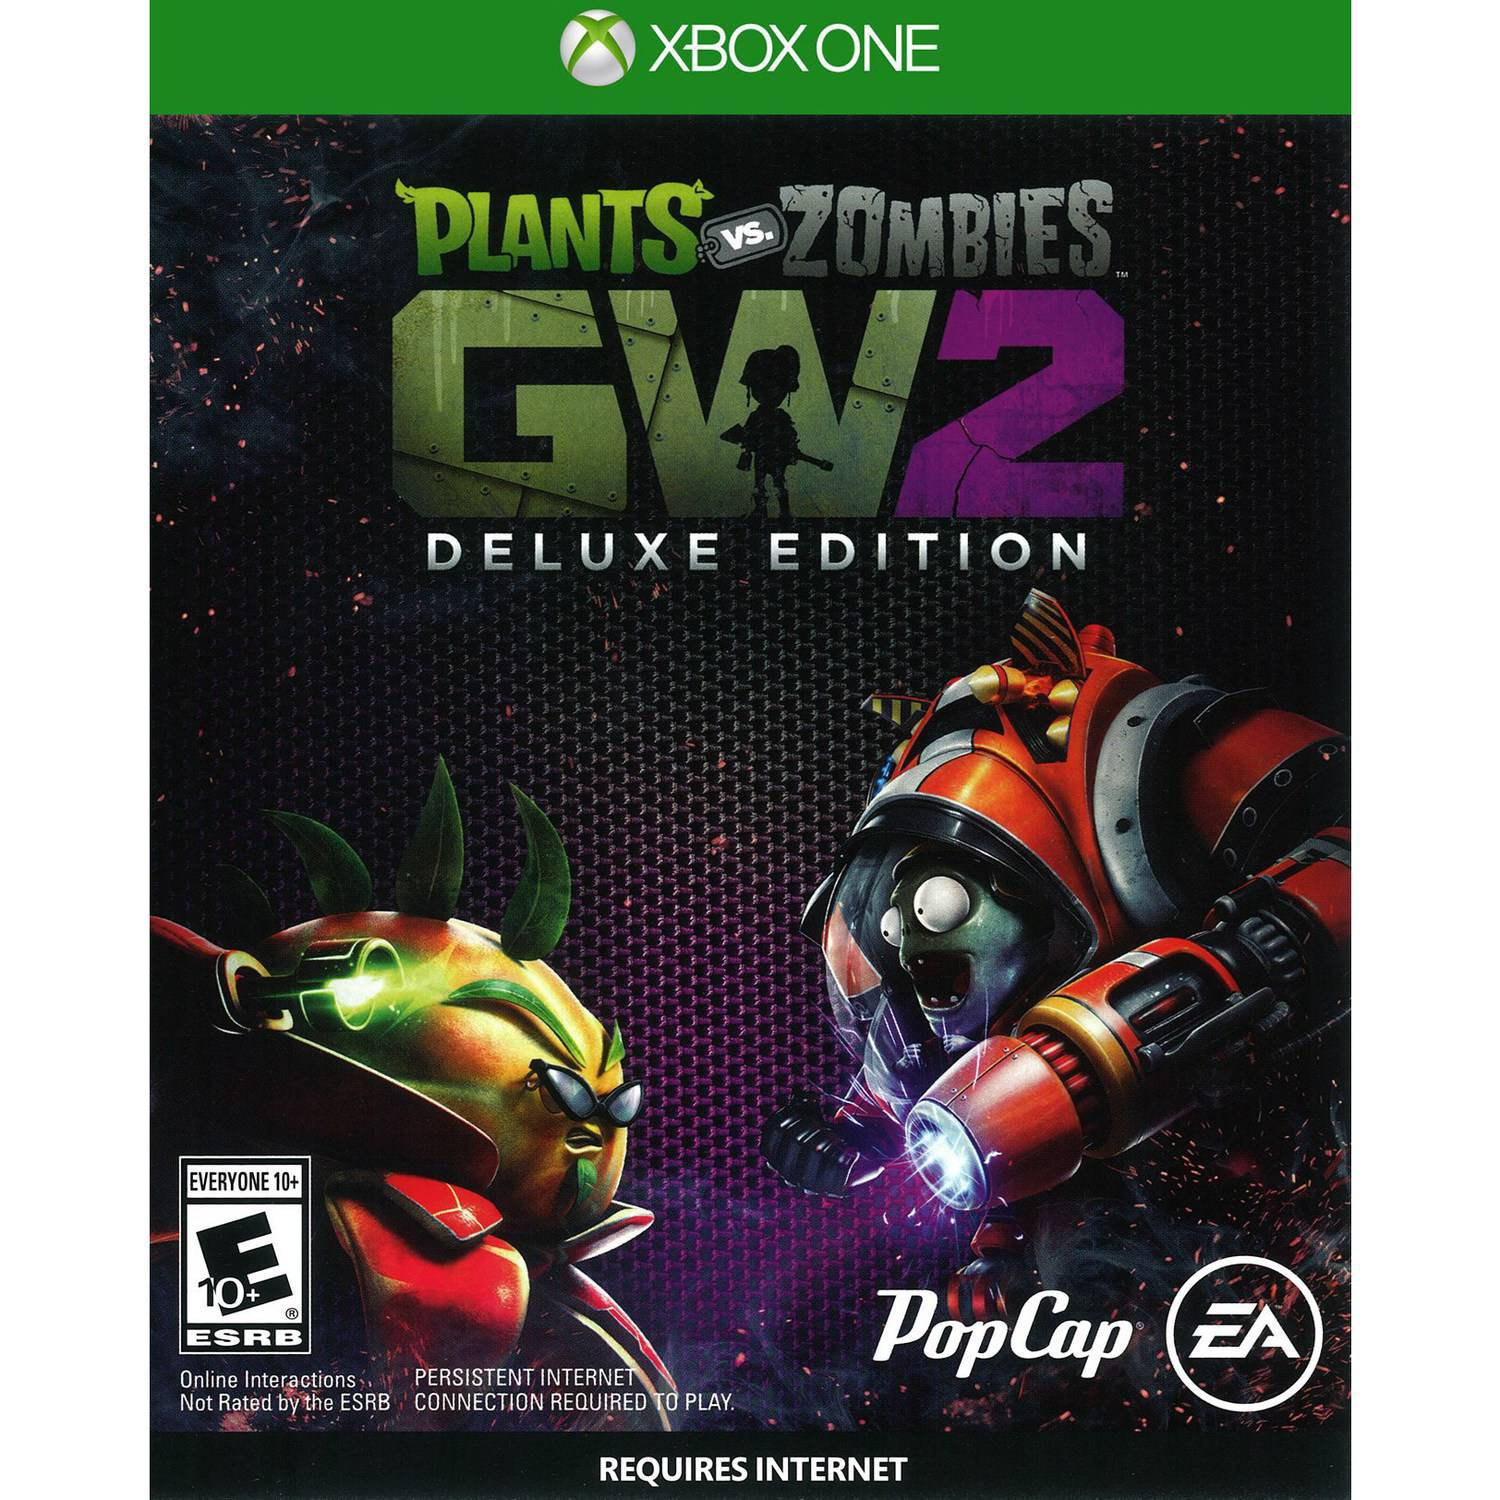 Plants vs Zombies Garden Warfare 2 Deluxe Edition (Xbox One)